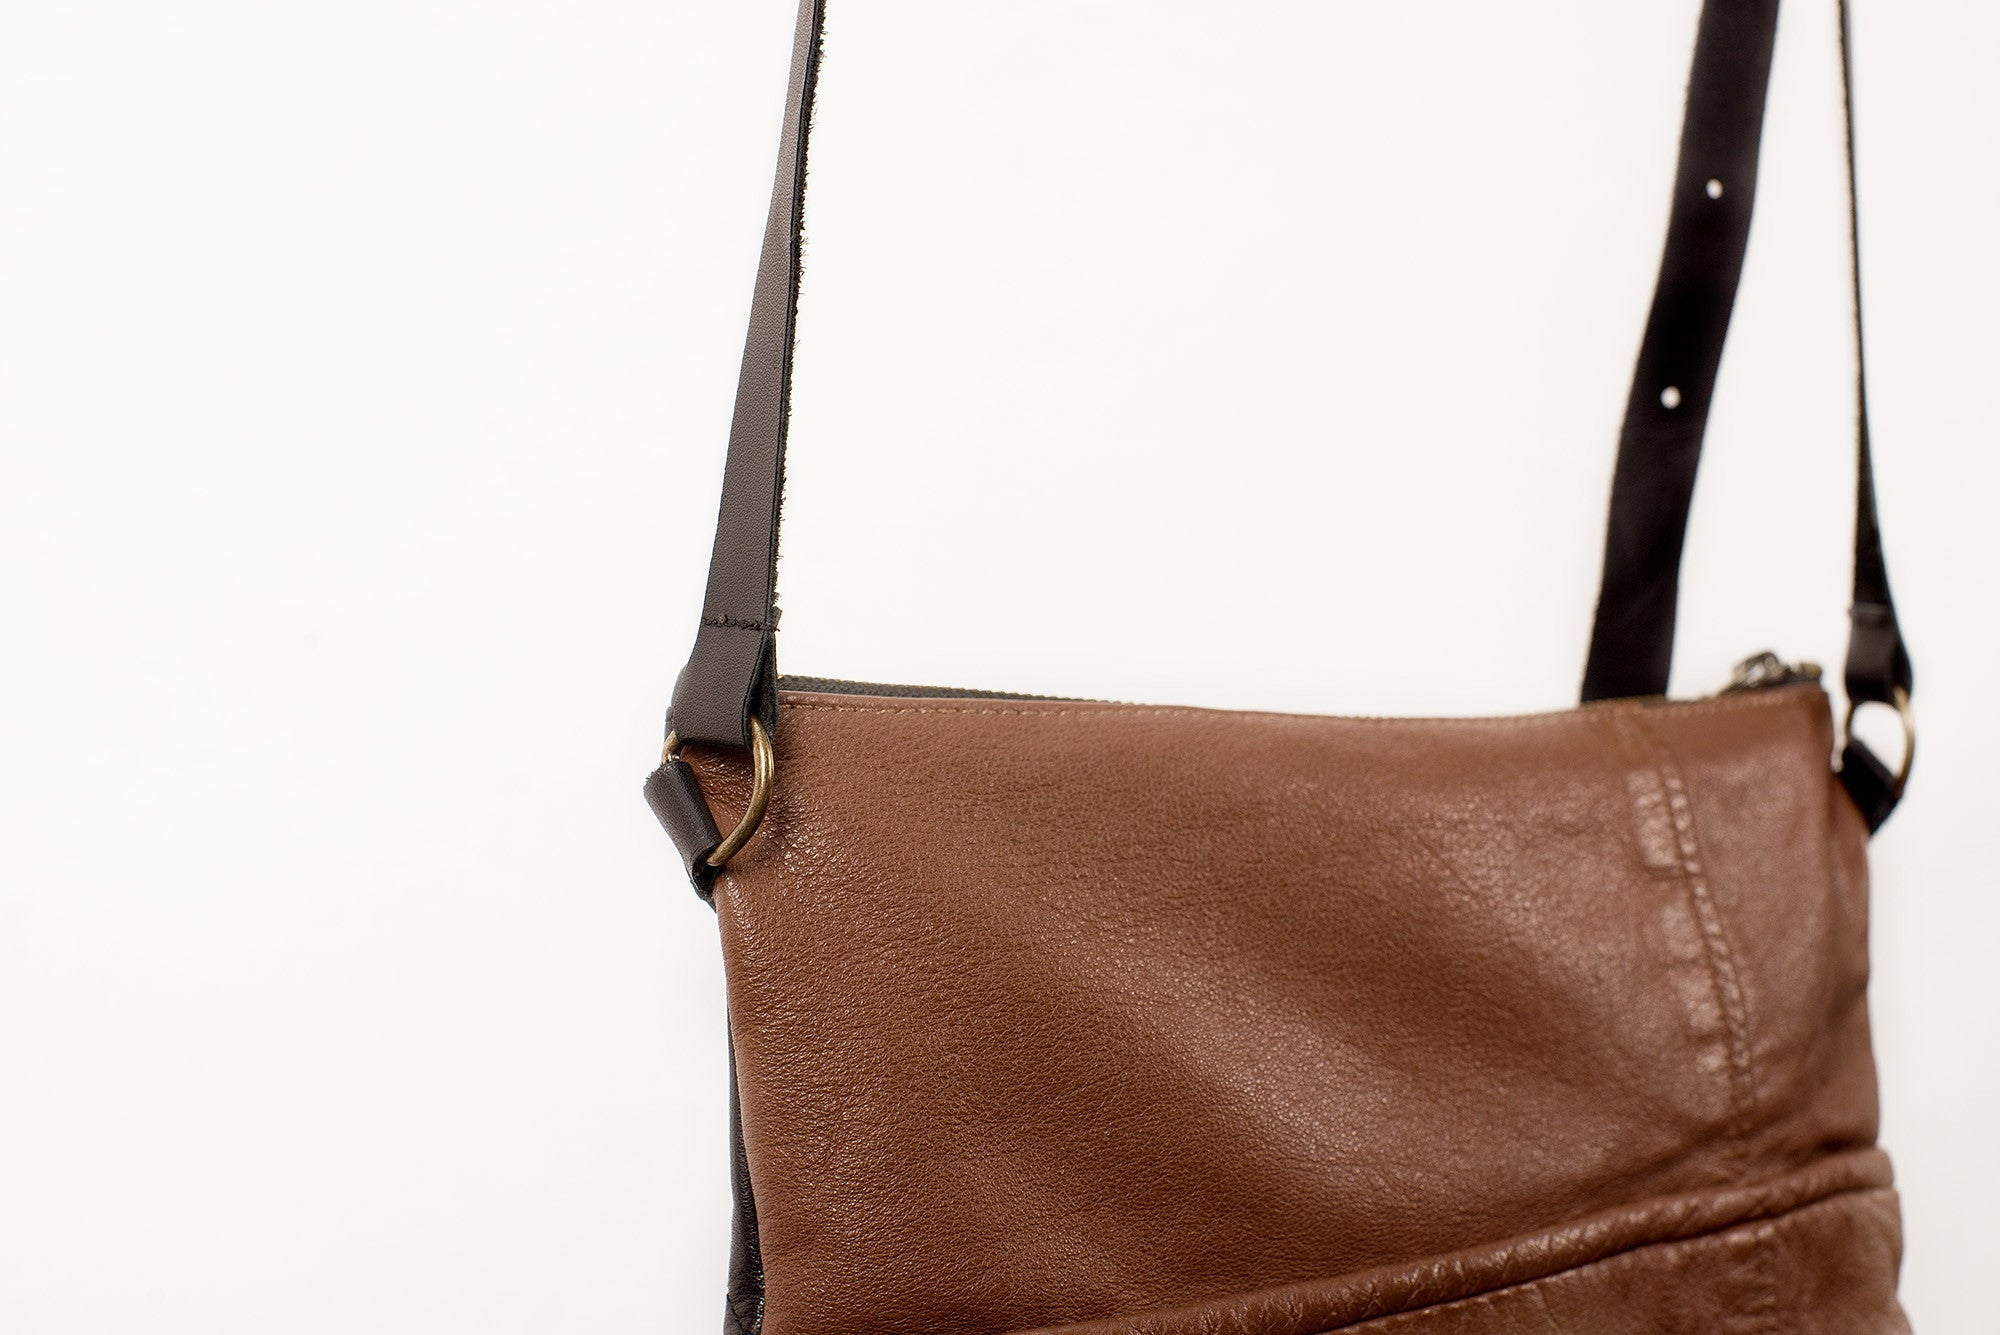 LEATHER SHOULDER BAG - SMALL